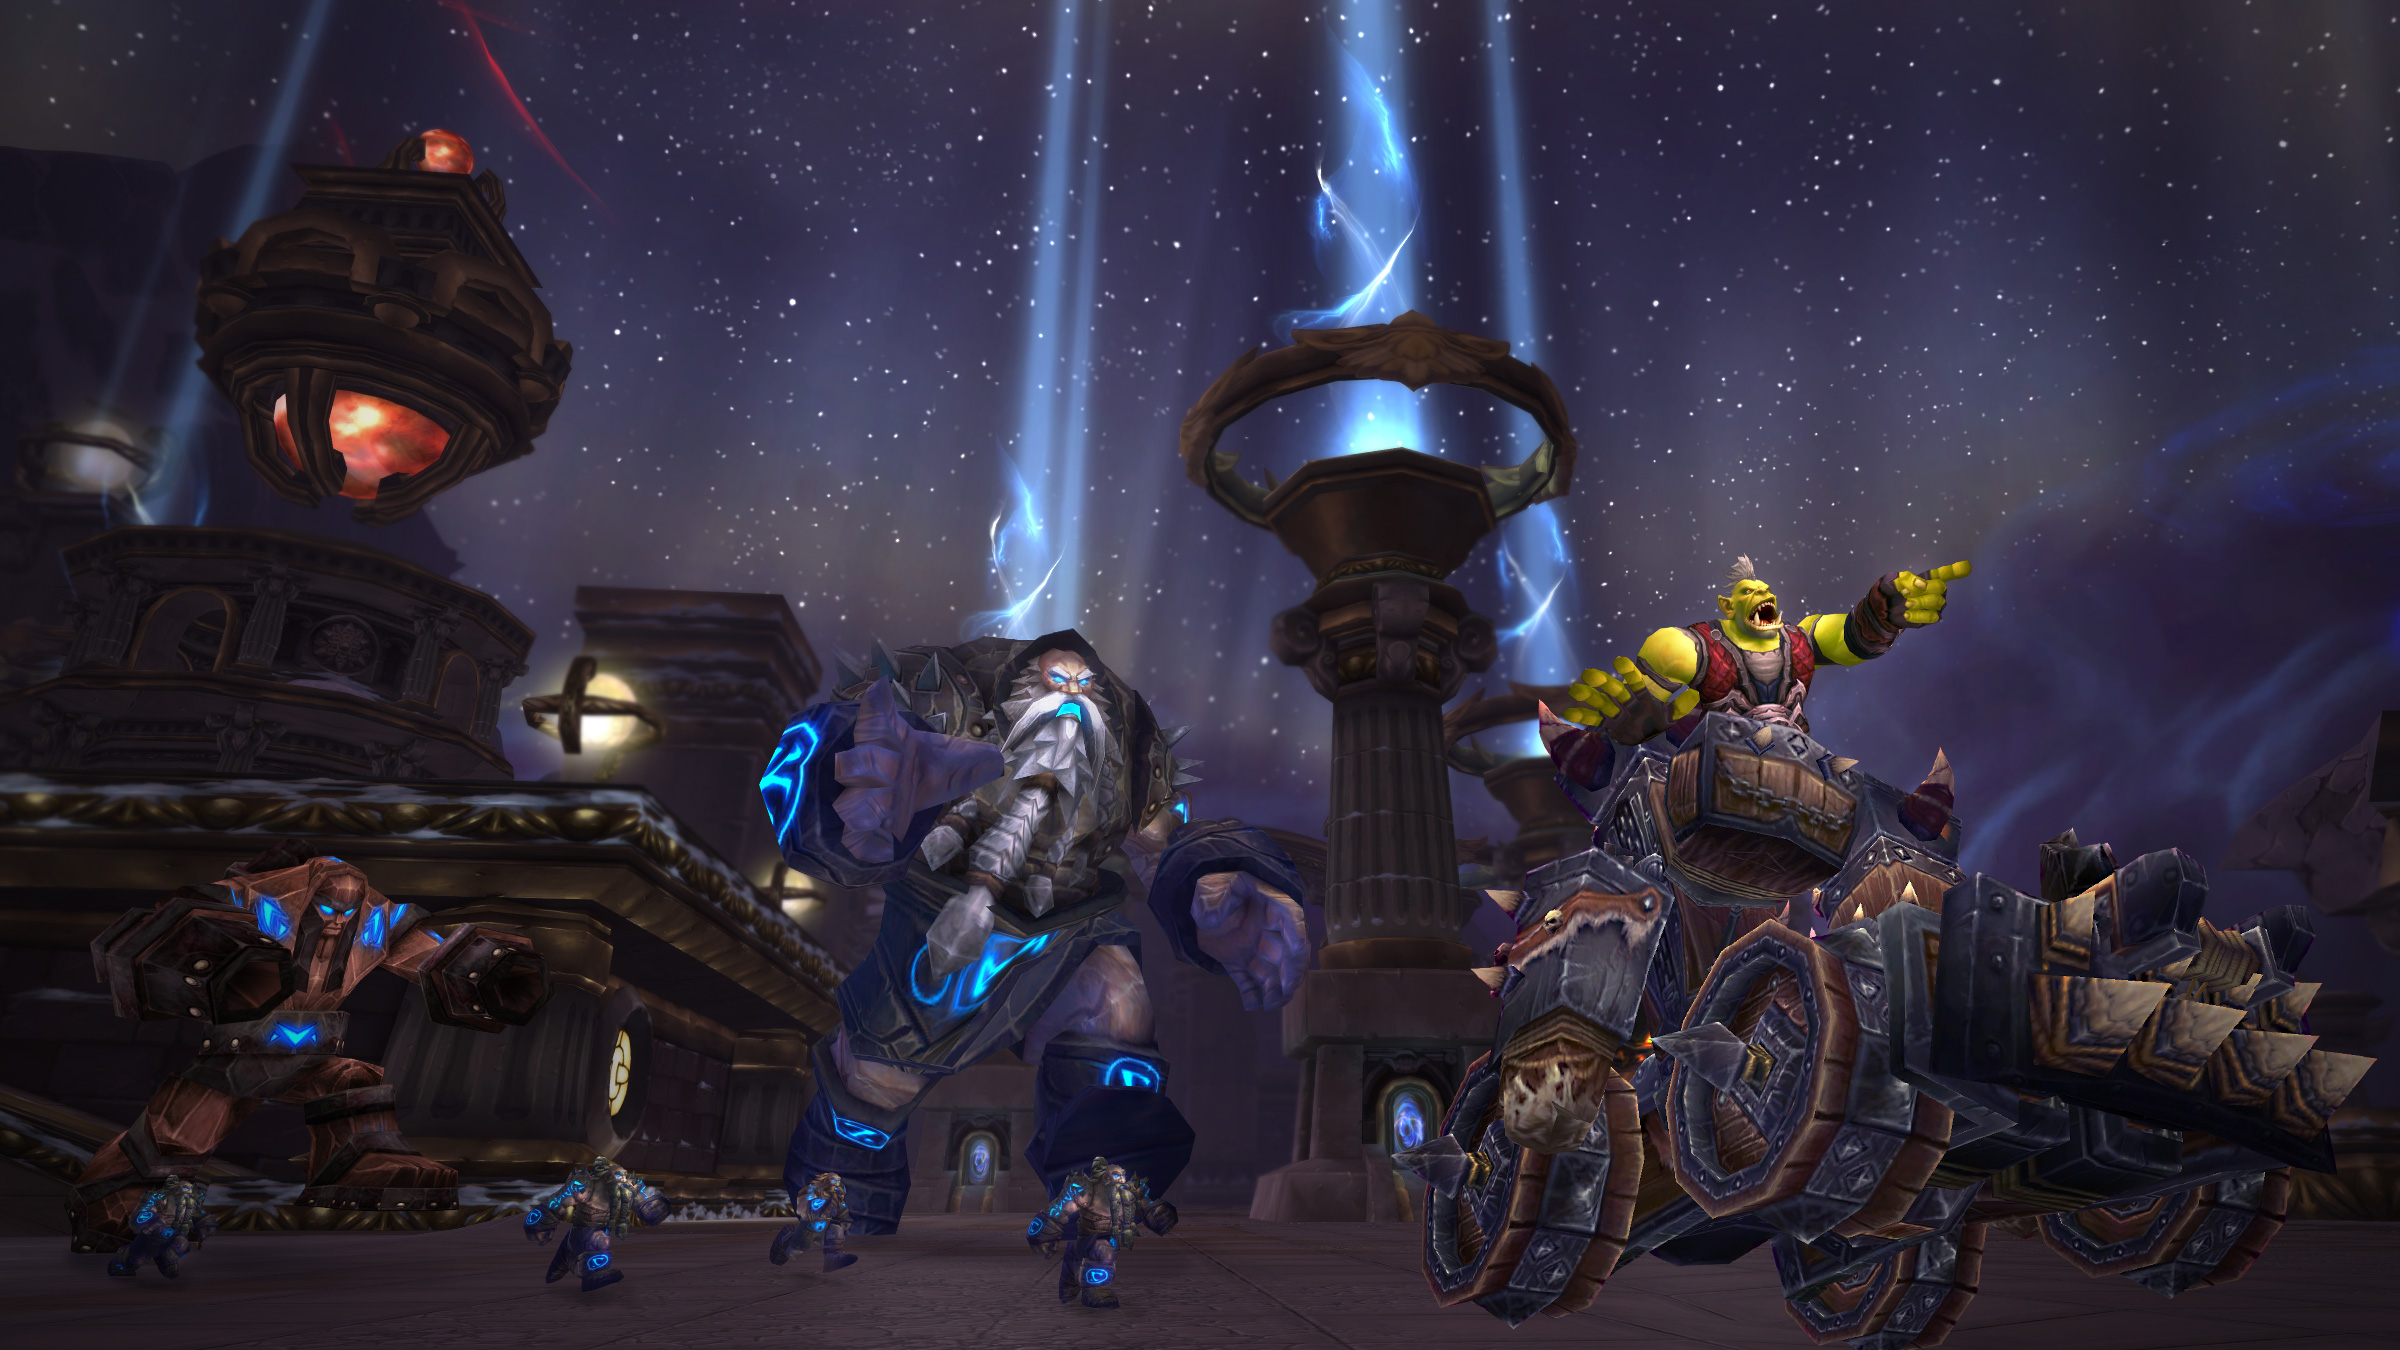 Wrath of the Lich King Timewalking Returns — December 4-11